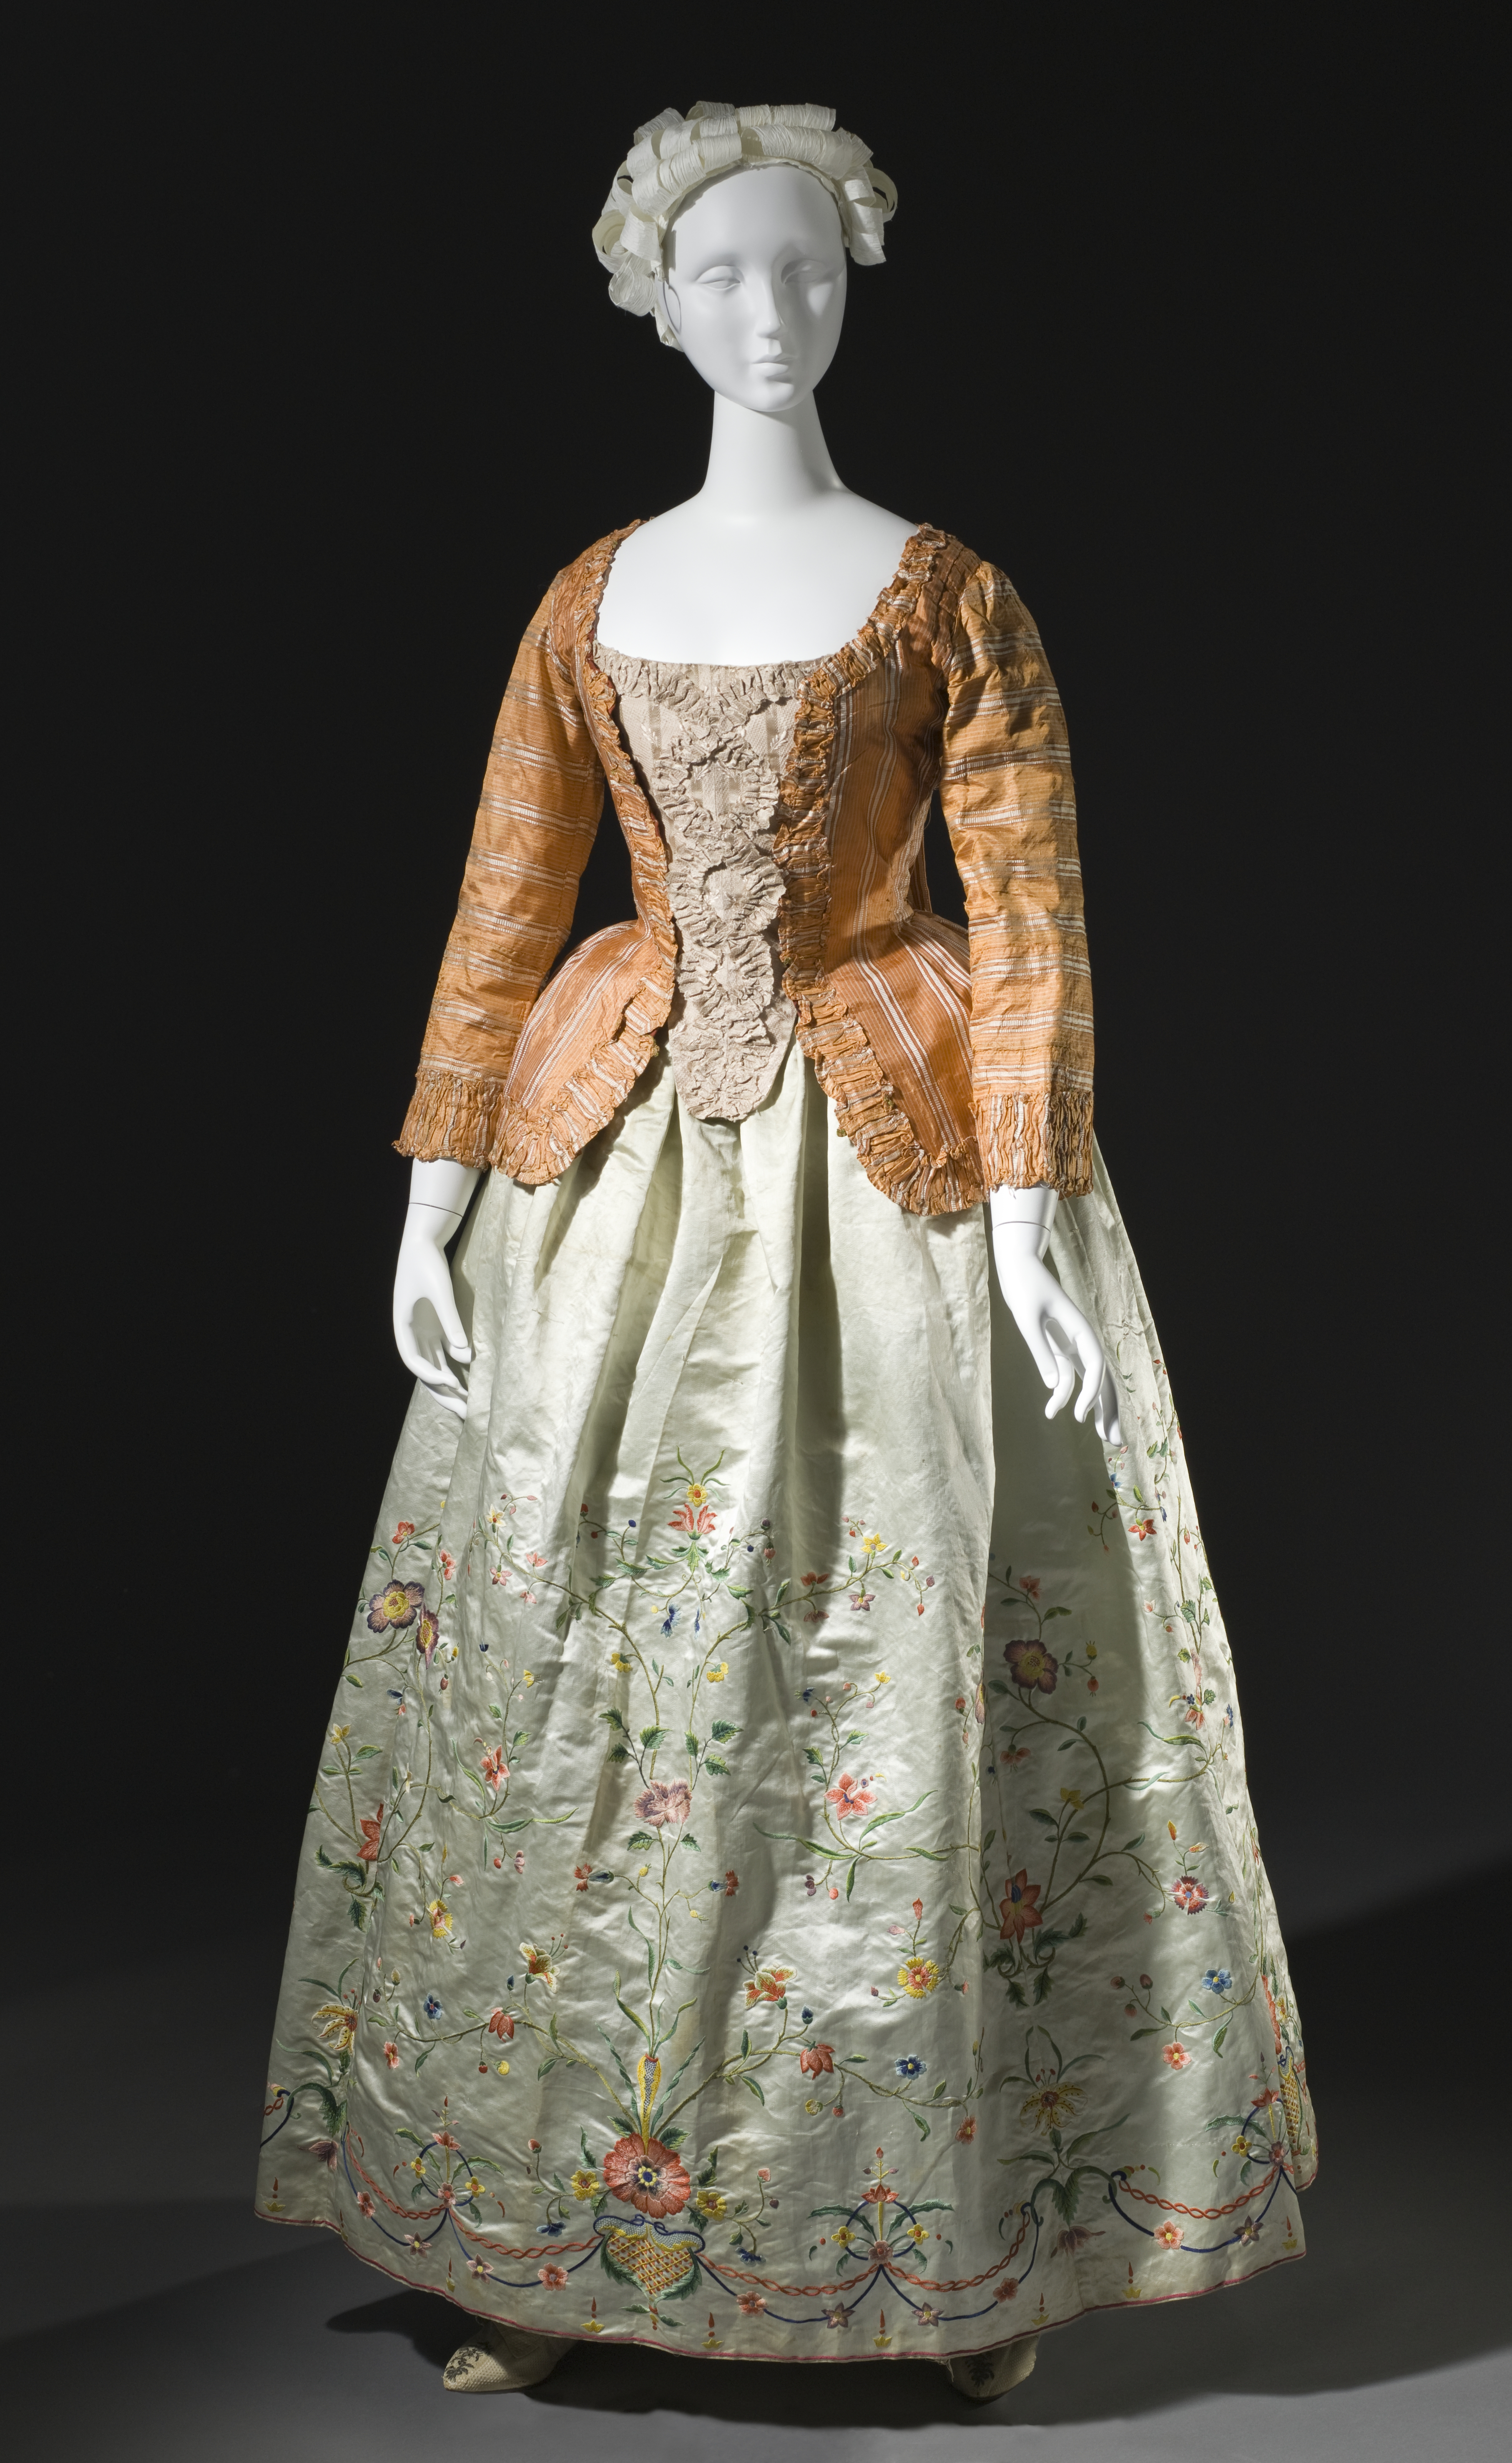 File:Woman's caraco and petticoat.jpg - Wikimedia Commons